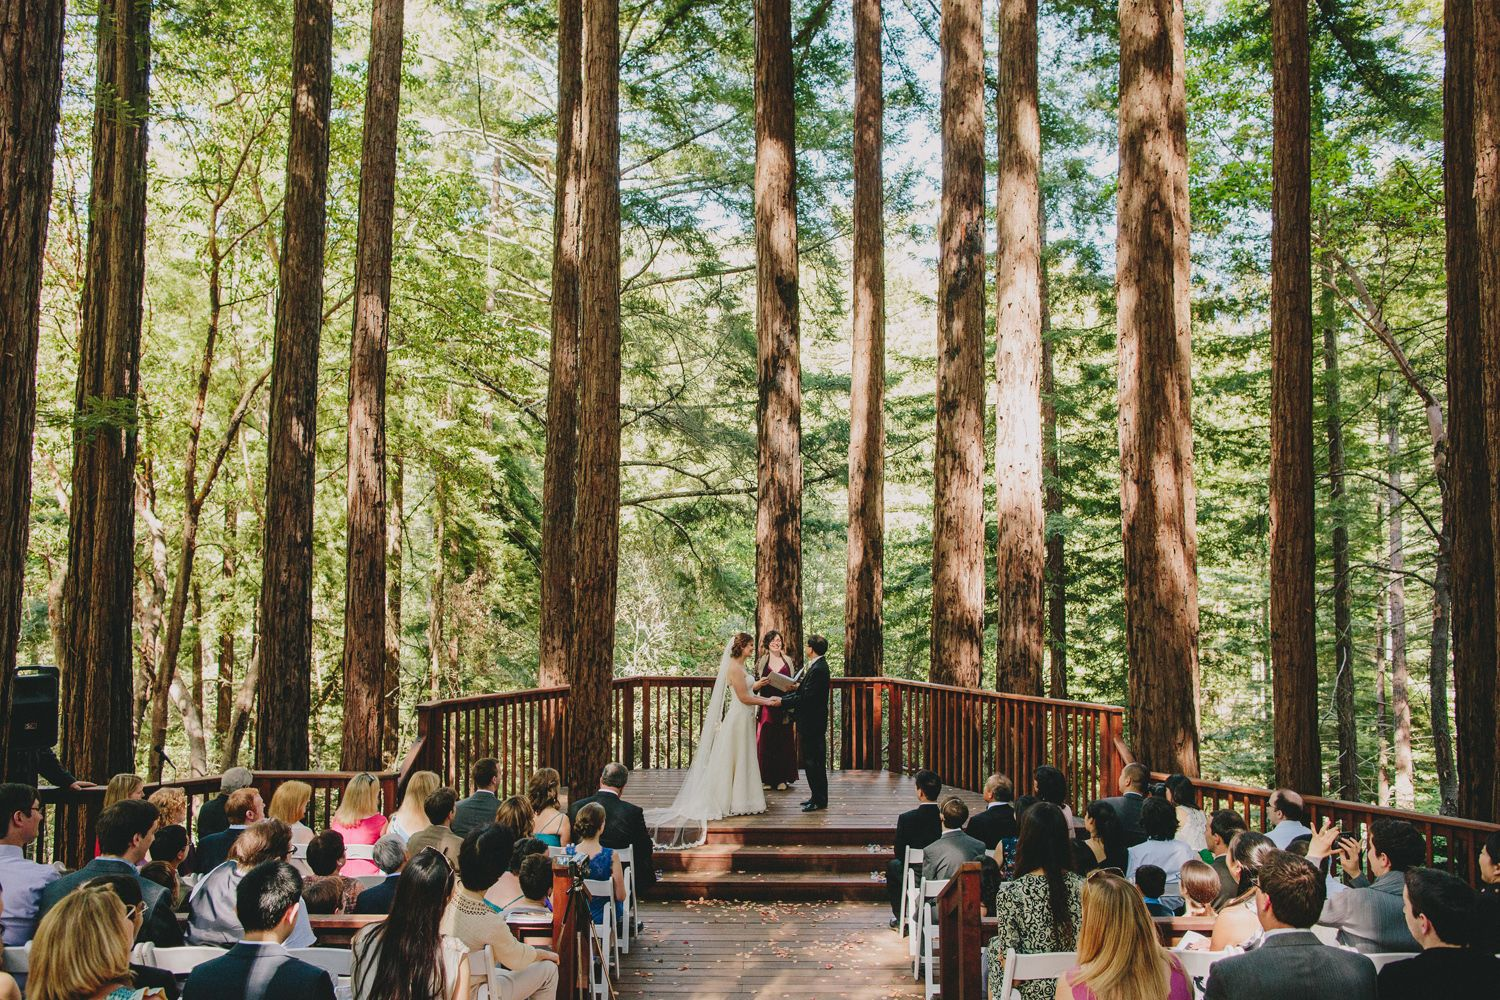 Amphitheatre Of The Redwoods At Pema Osel Ling Wedding And Event Venue Santa Cruz Mountains Ca Redwood Forest Photo By Sun Life